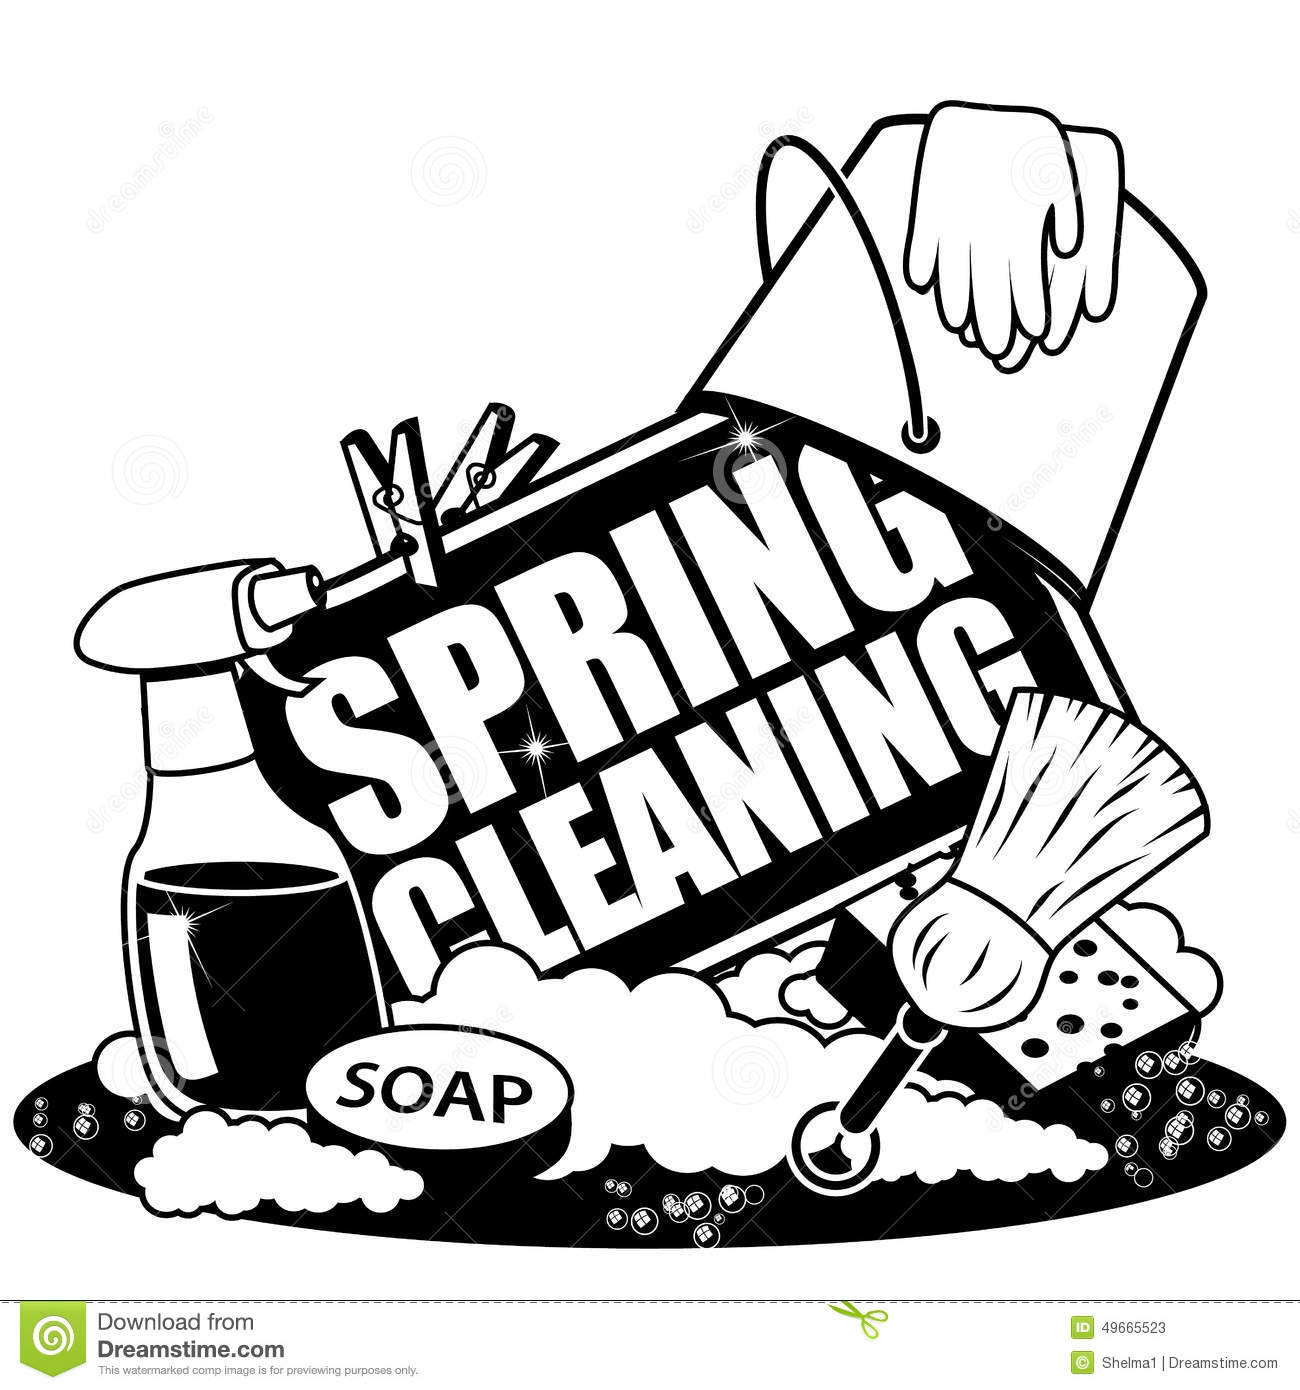 Cleaning Clipart Black And White.